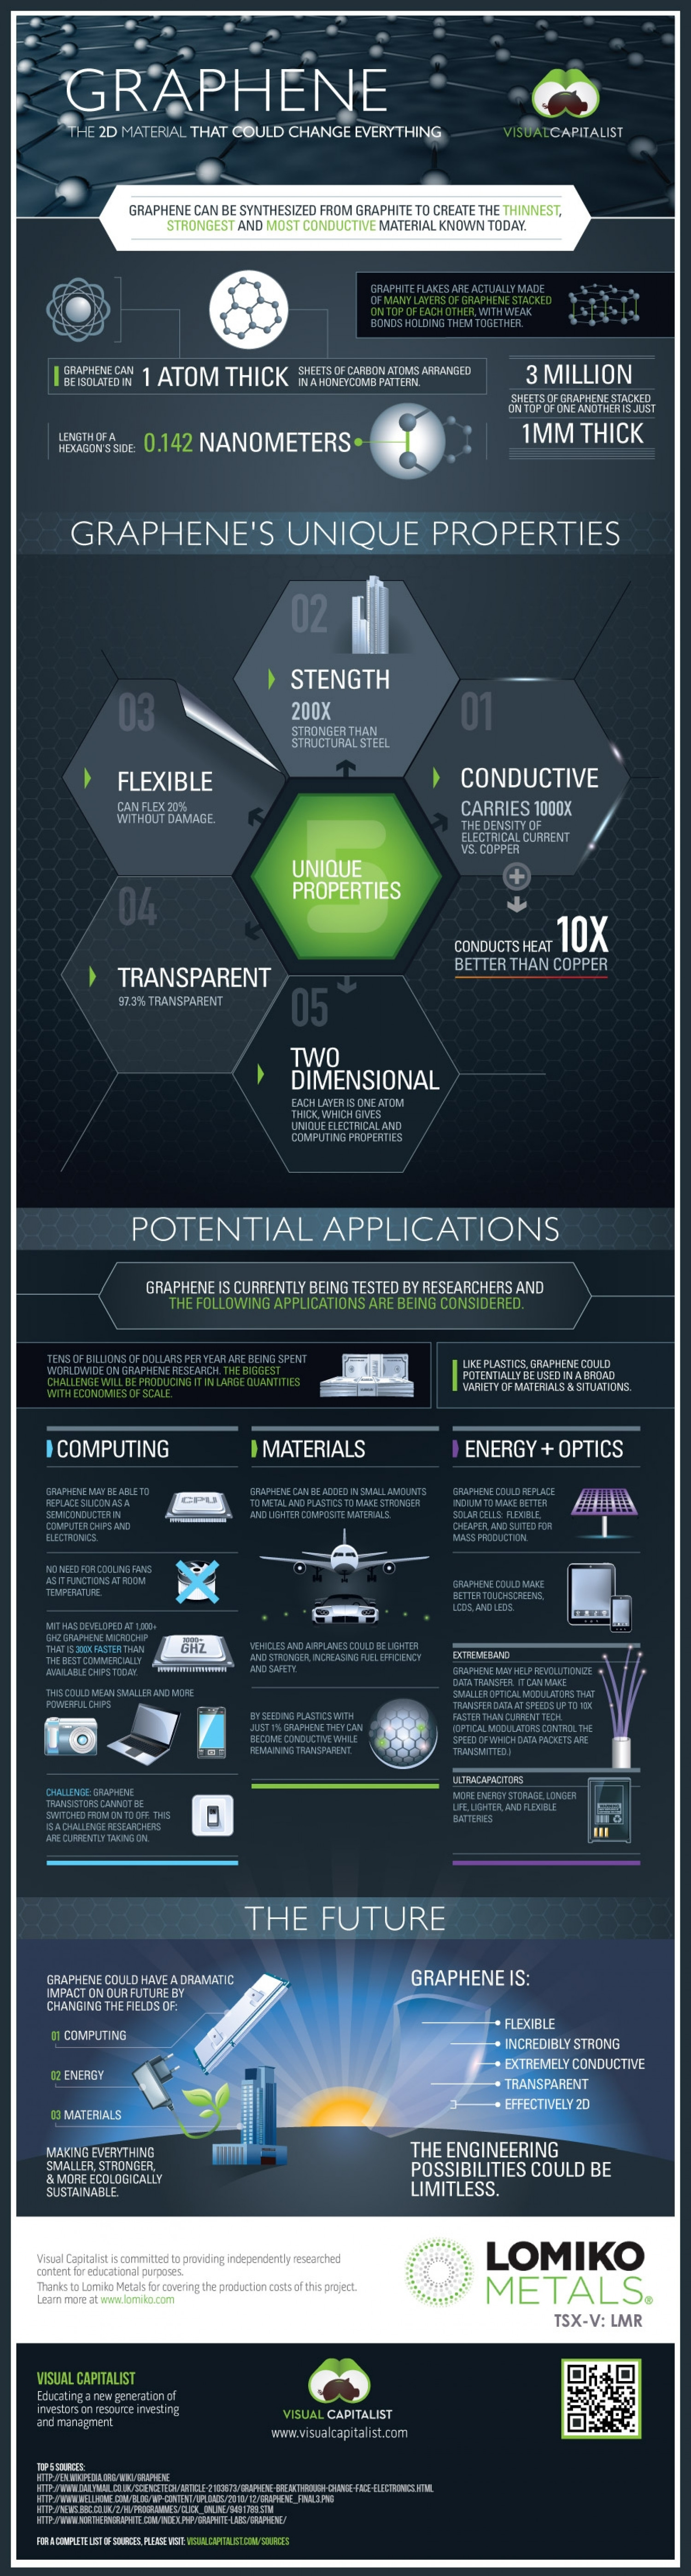 Graphene: The 2D Material That Could Change Everything Infographic